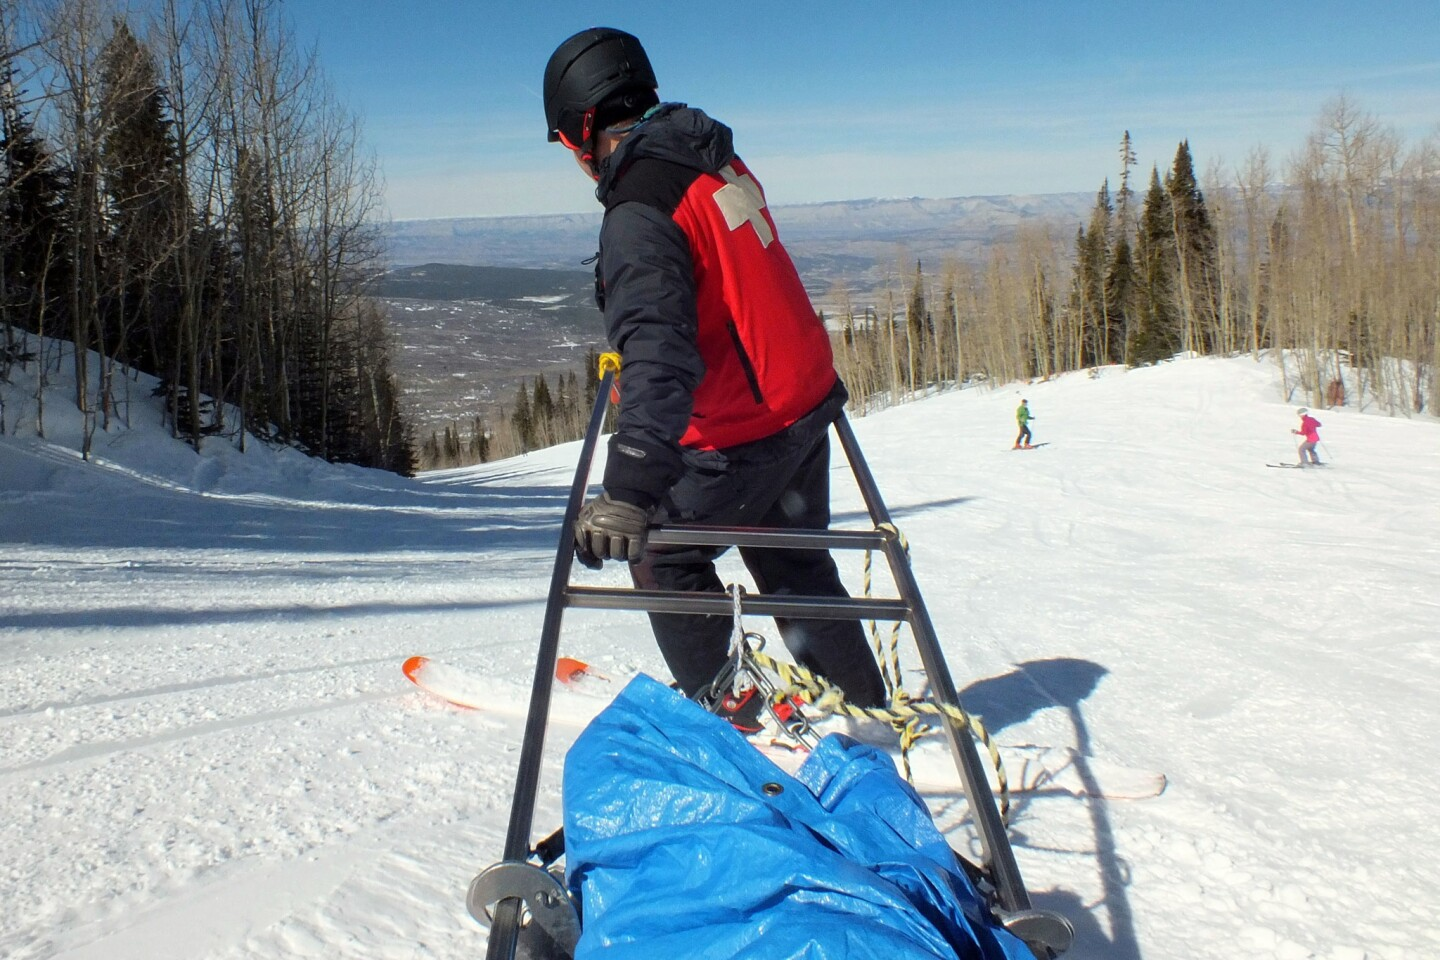 Powderhorn Mountain Resort now offers a ski along program with patrolers to learn safety, transporting, and caring for customers on the mountain.